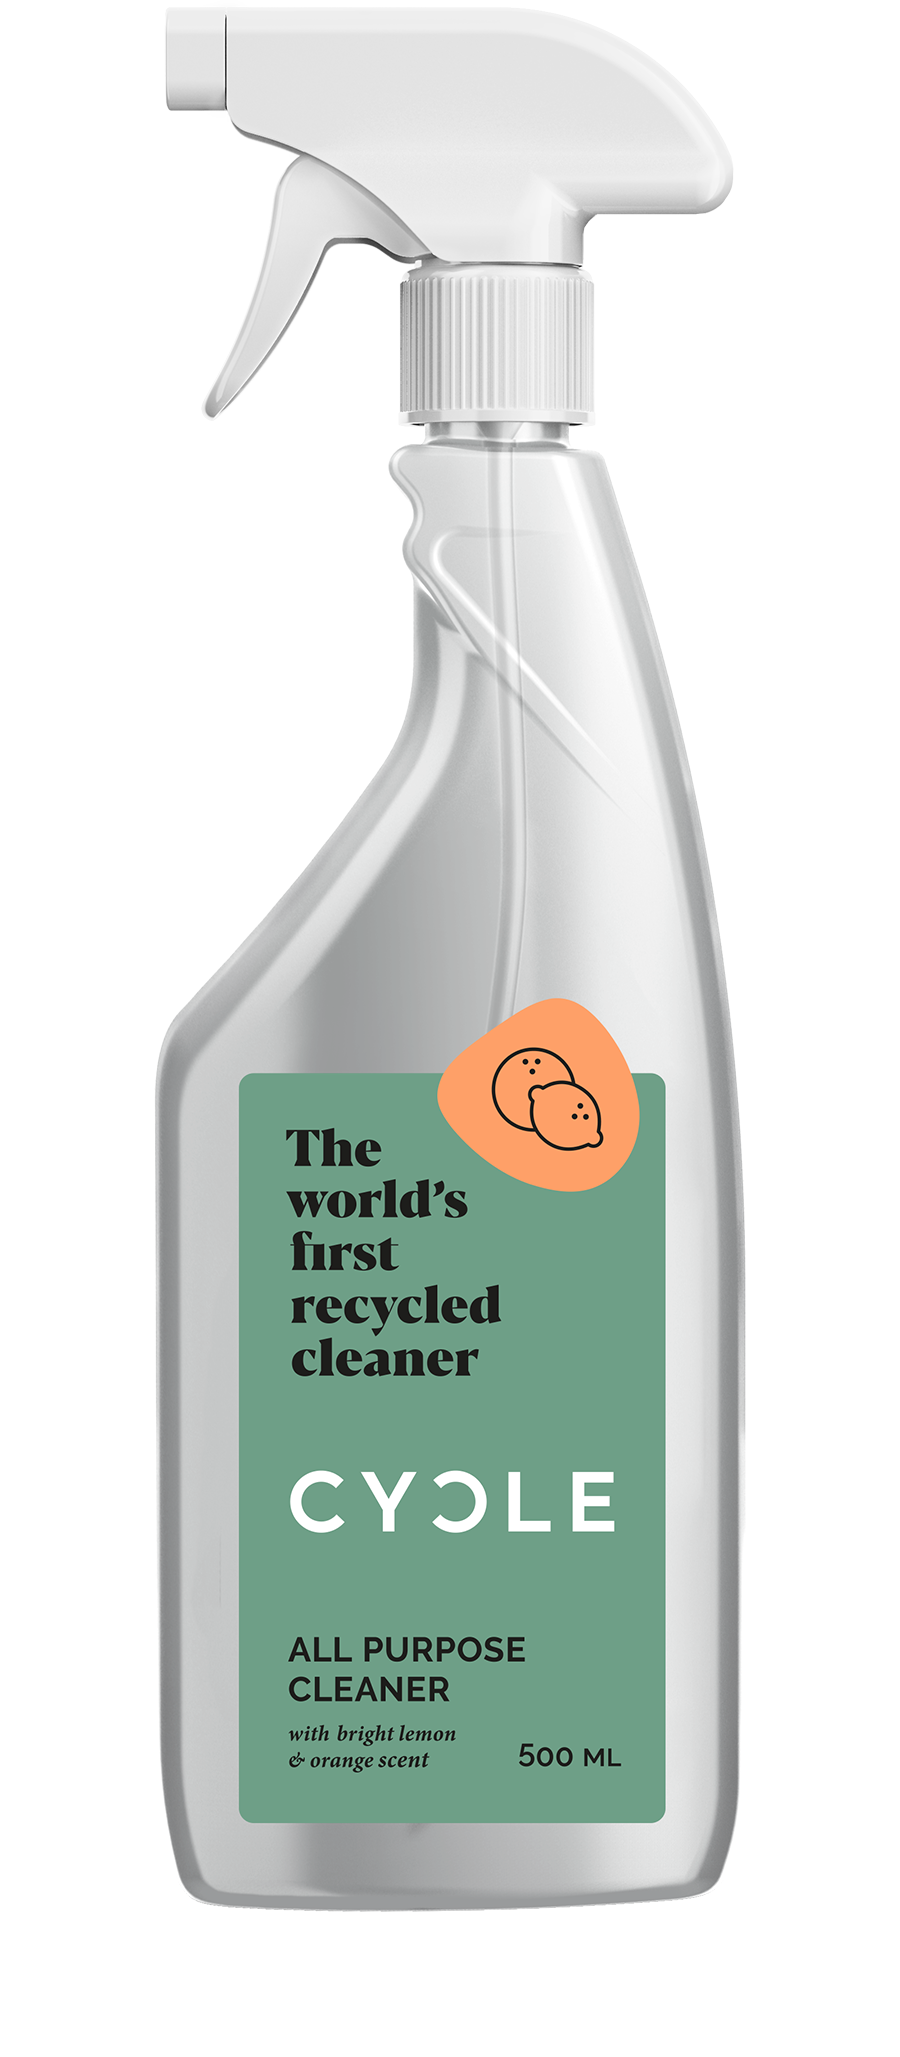 Cycle All Purpose Cleaner